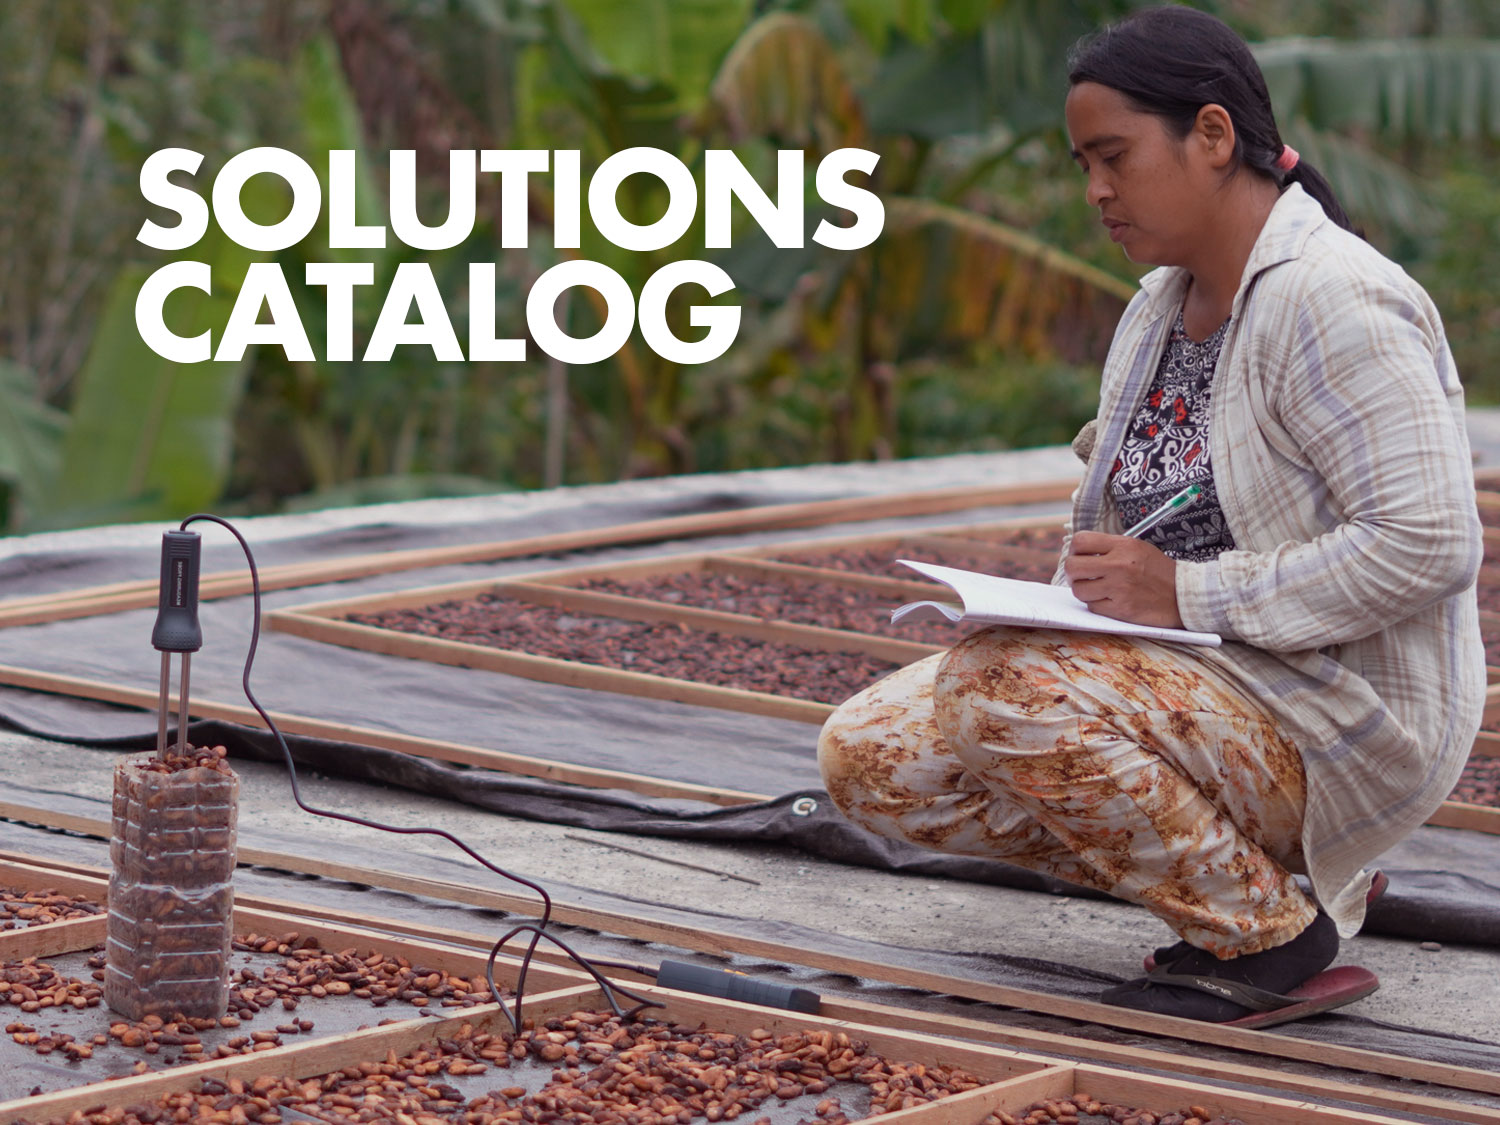 Solutions Catalog - A Platform to Access Results & Learnings from Kopernik's Lean Experiments